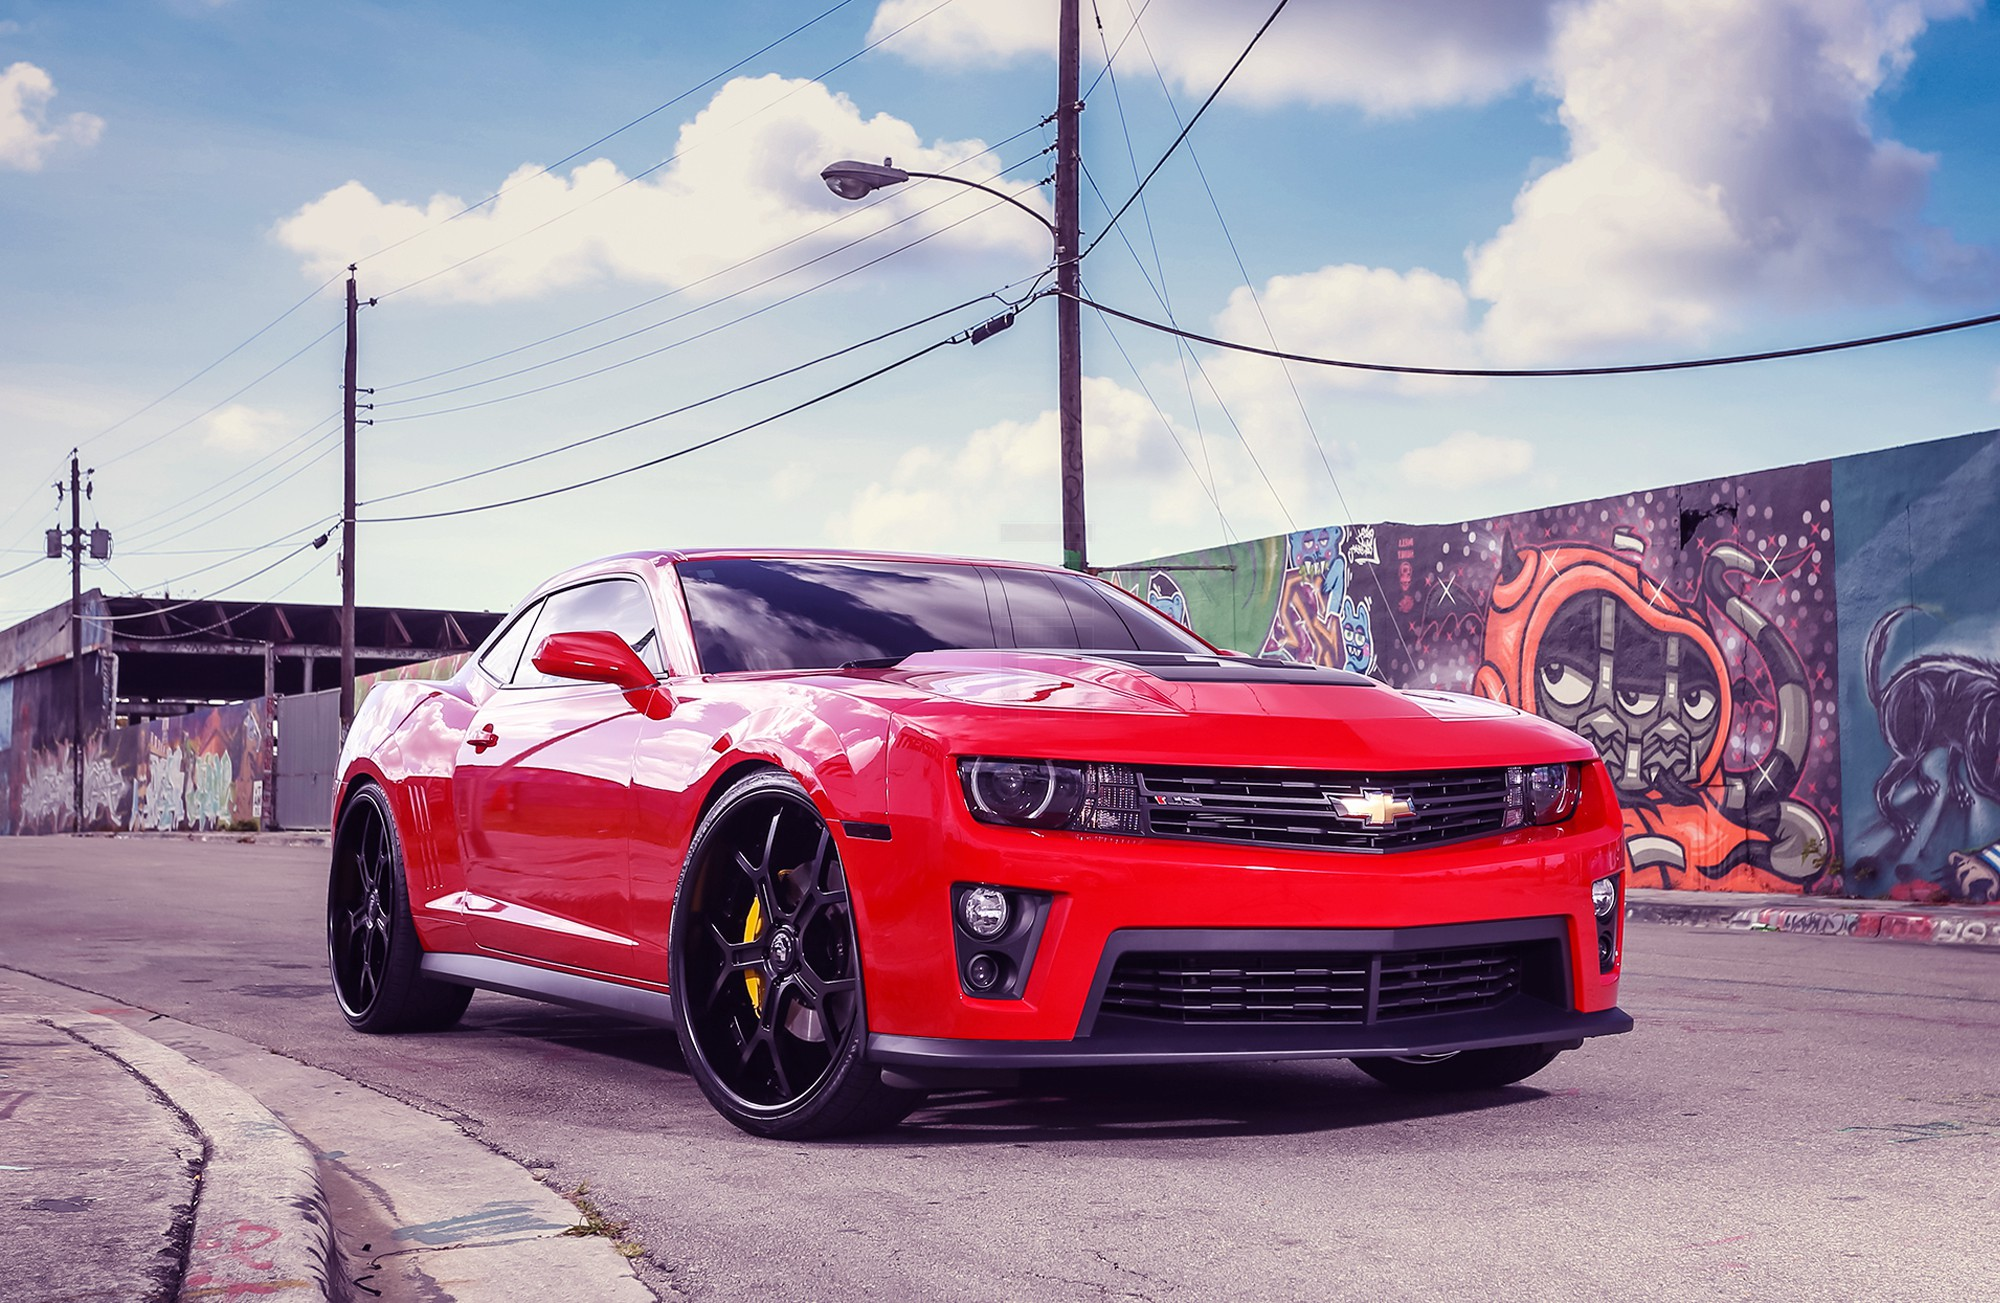 2017 Chevrolet Camaro ZL1 Convertible   New HD Wallpapers 2000x1303